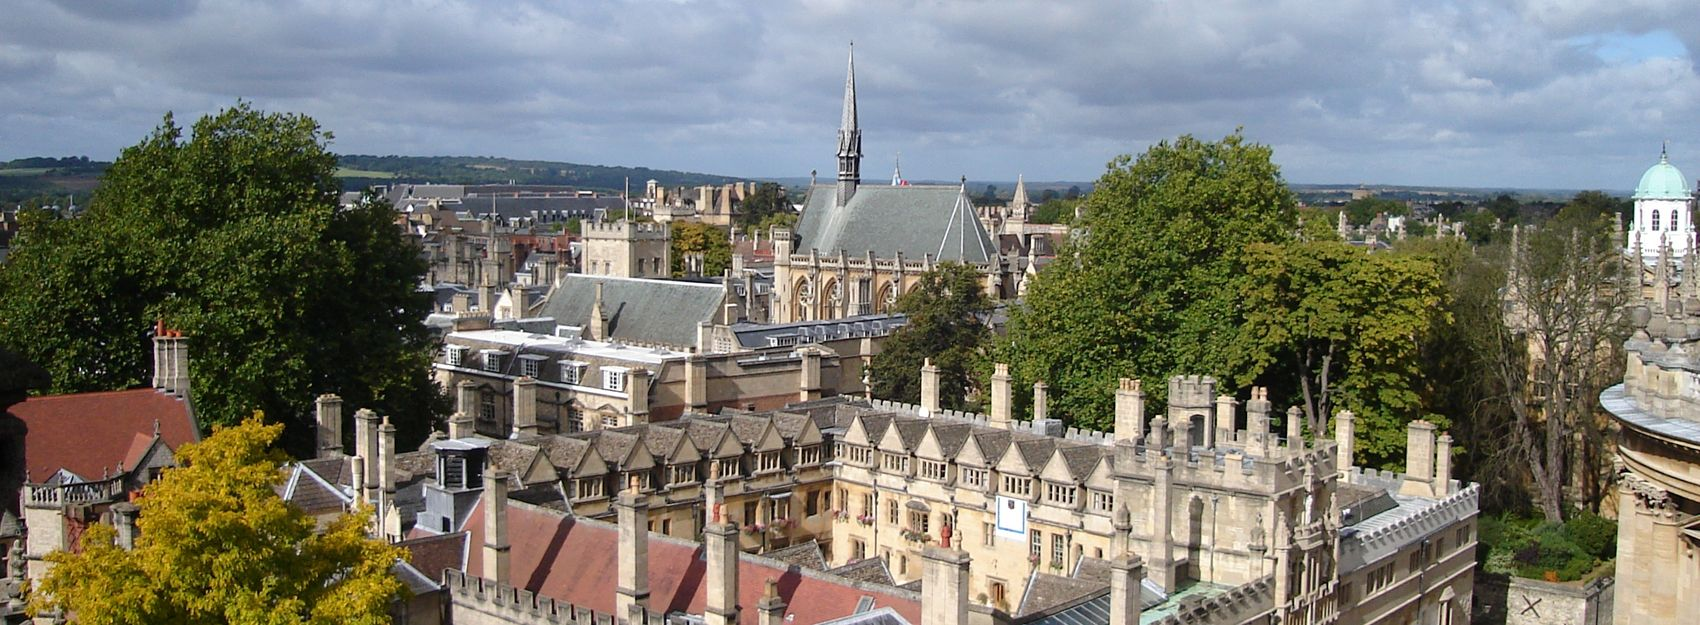 Panoramic of Oxford